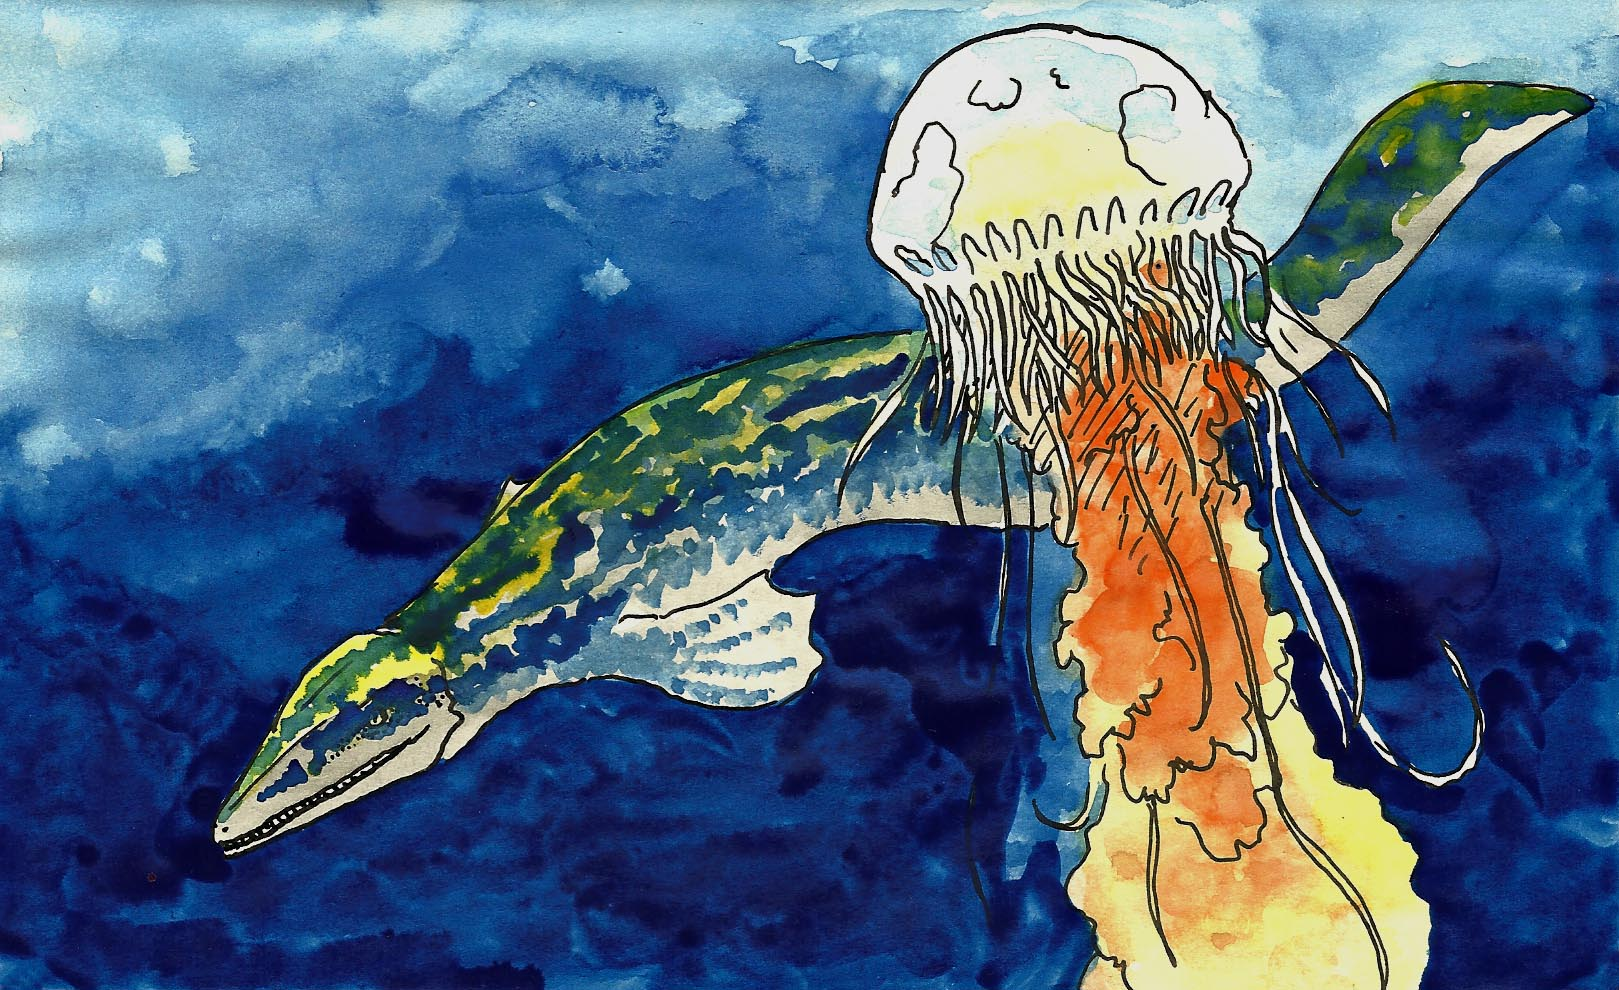 a mosasaur swims past a large jellyfish